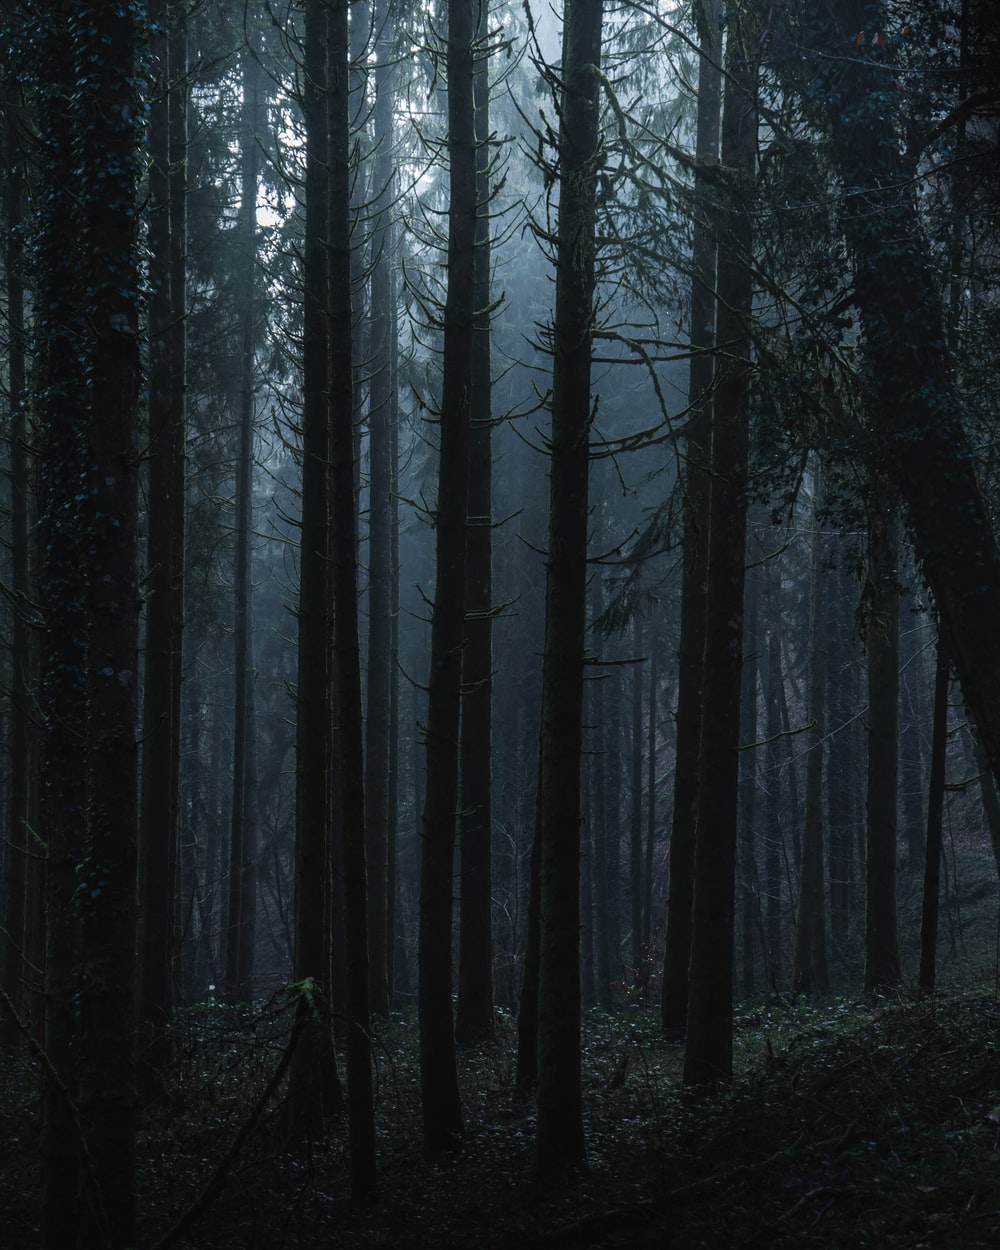 black bare trees in forest during daytime